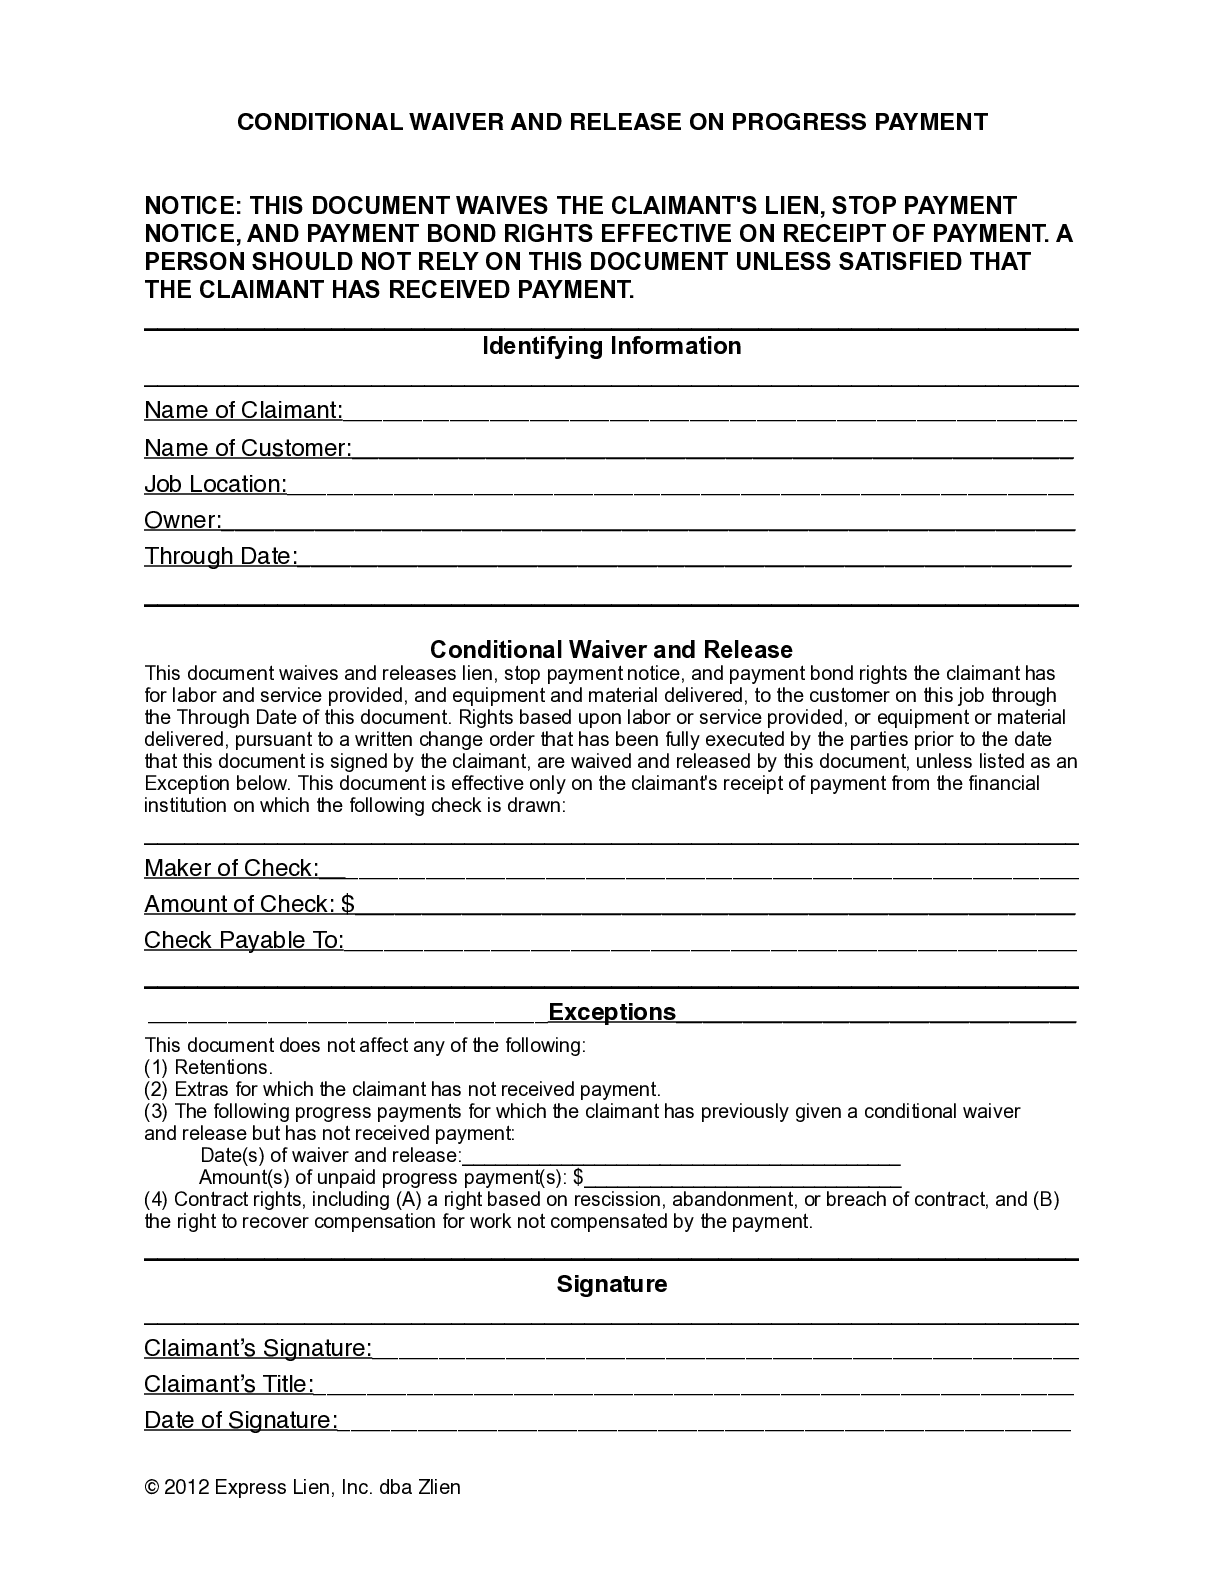 Pennsylvania Partial Conditional Lien Waiver Form - free from